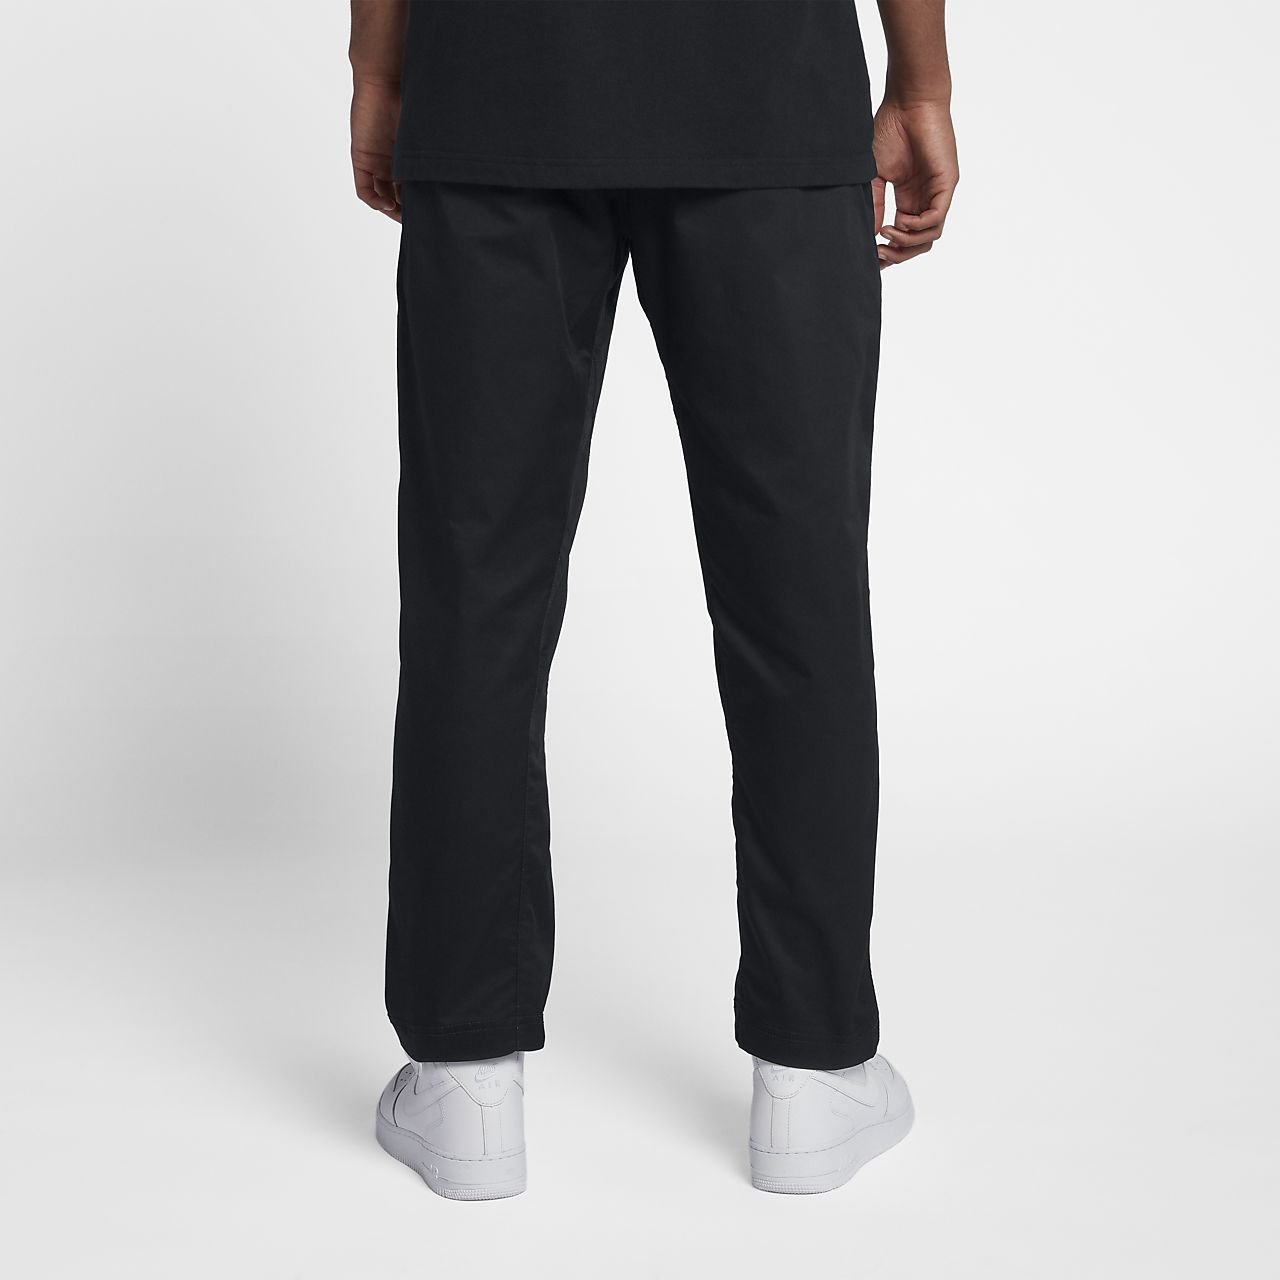 39232860d3 Low Resolution NikeLab Collection Men's Woven Pants NikeLab Collection  Men's Woven Pants